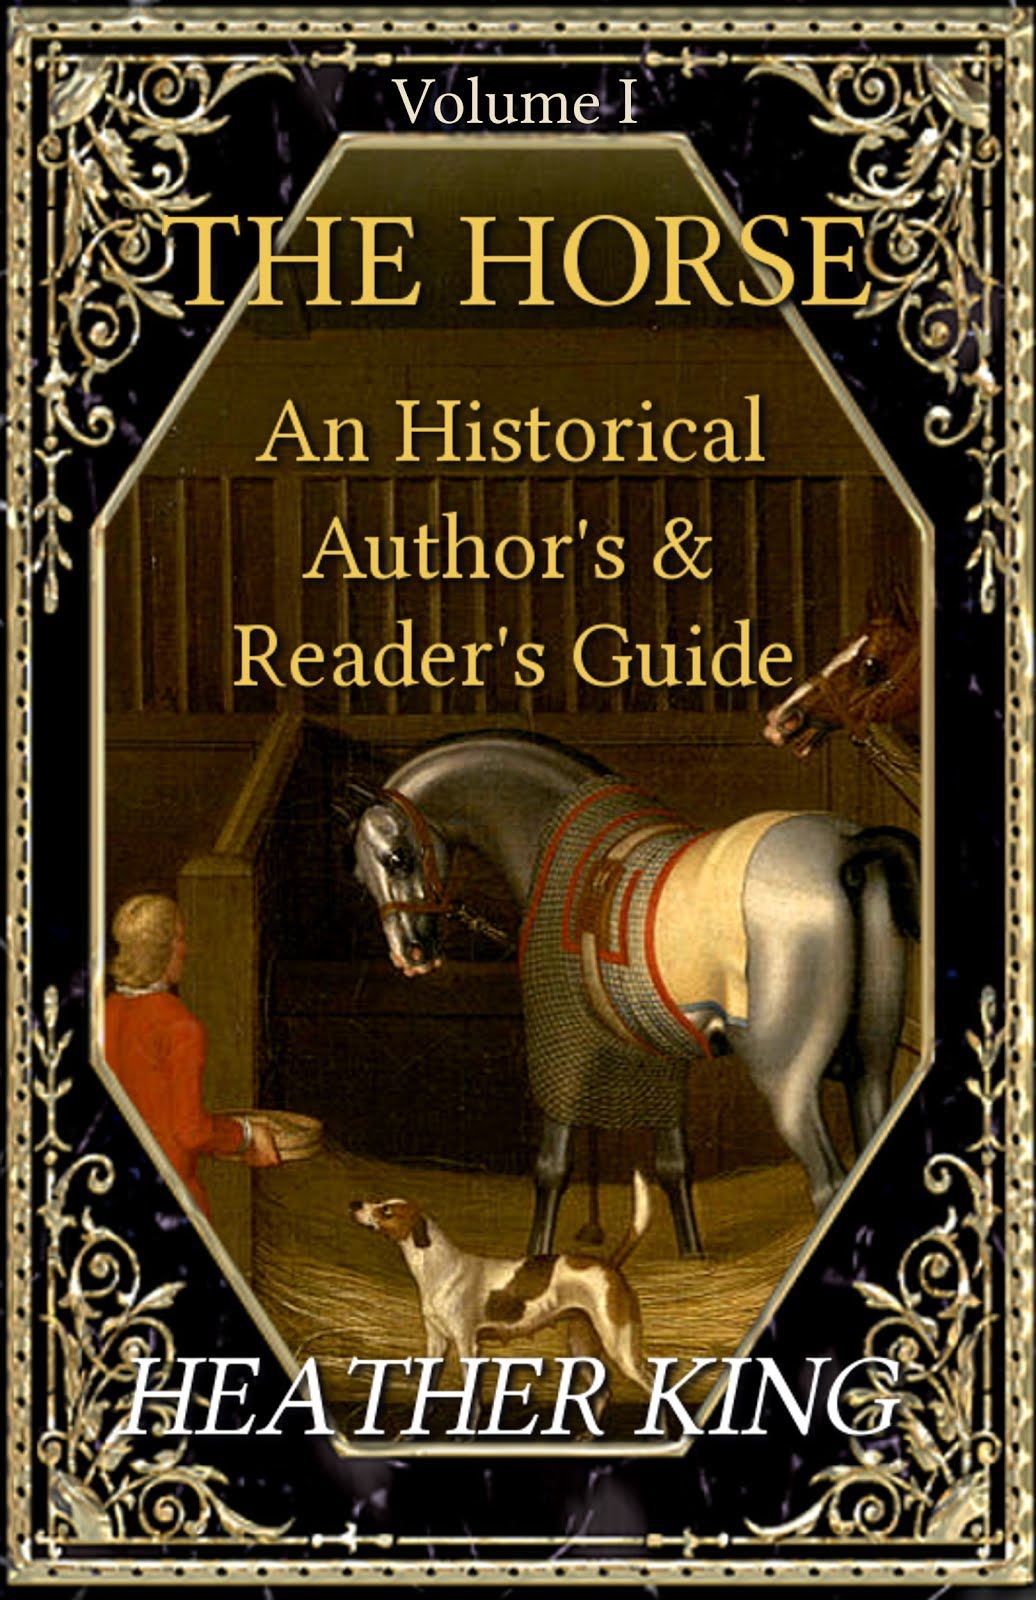 The Horse: An Historical Author's & Reader's Guide